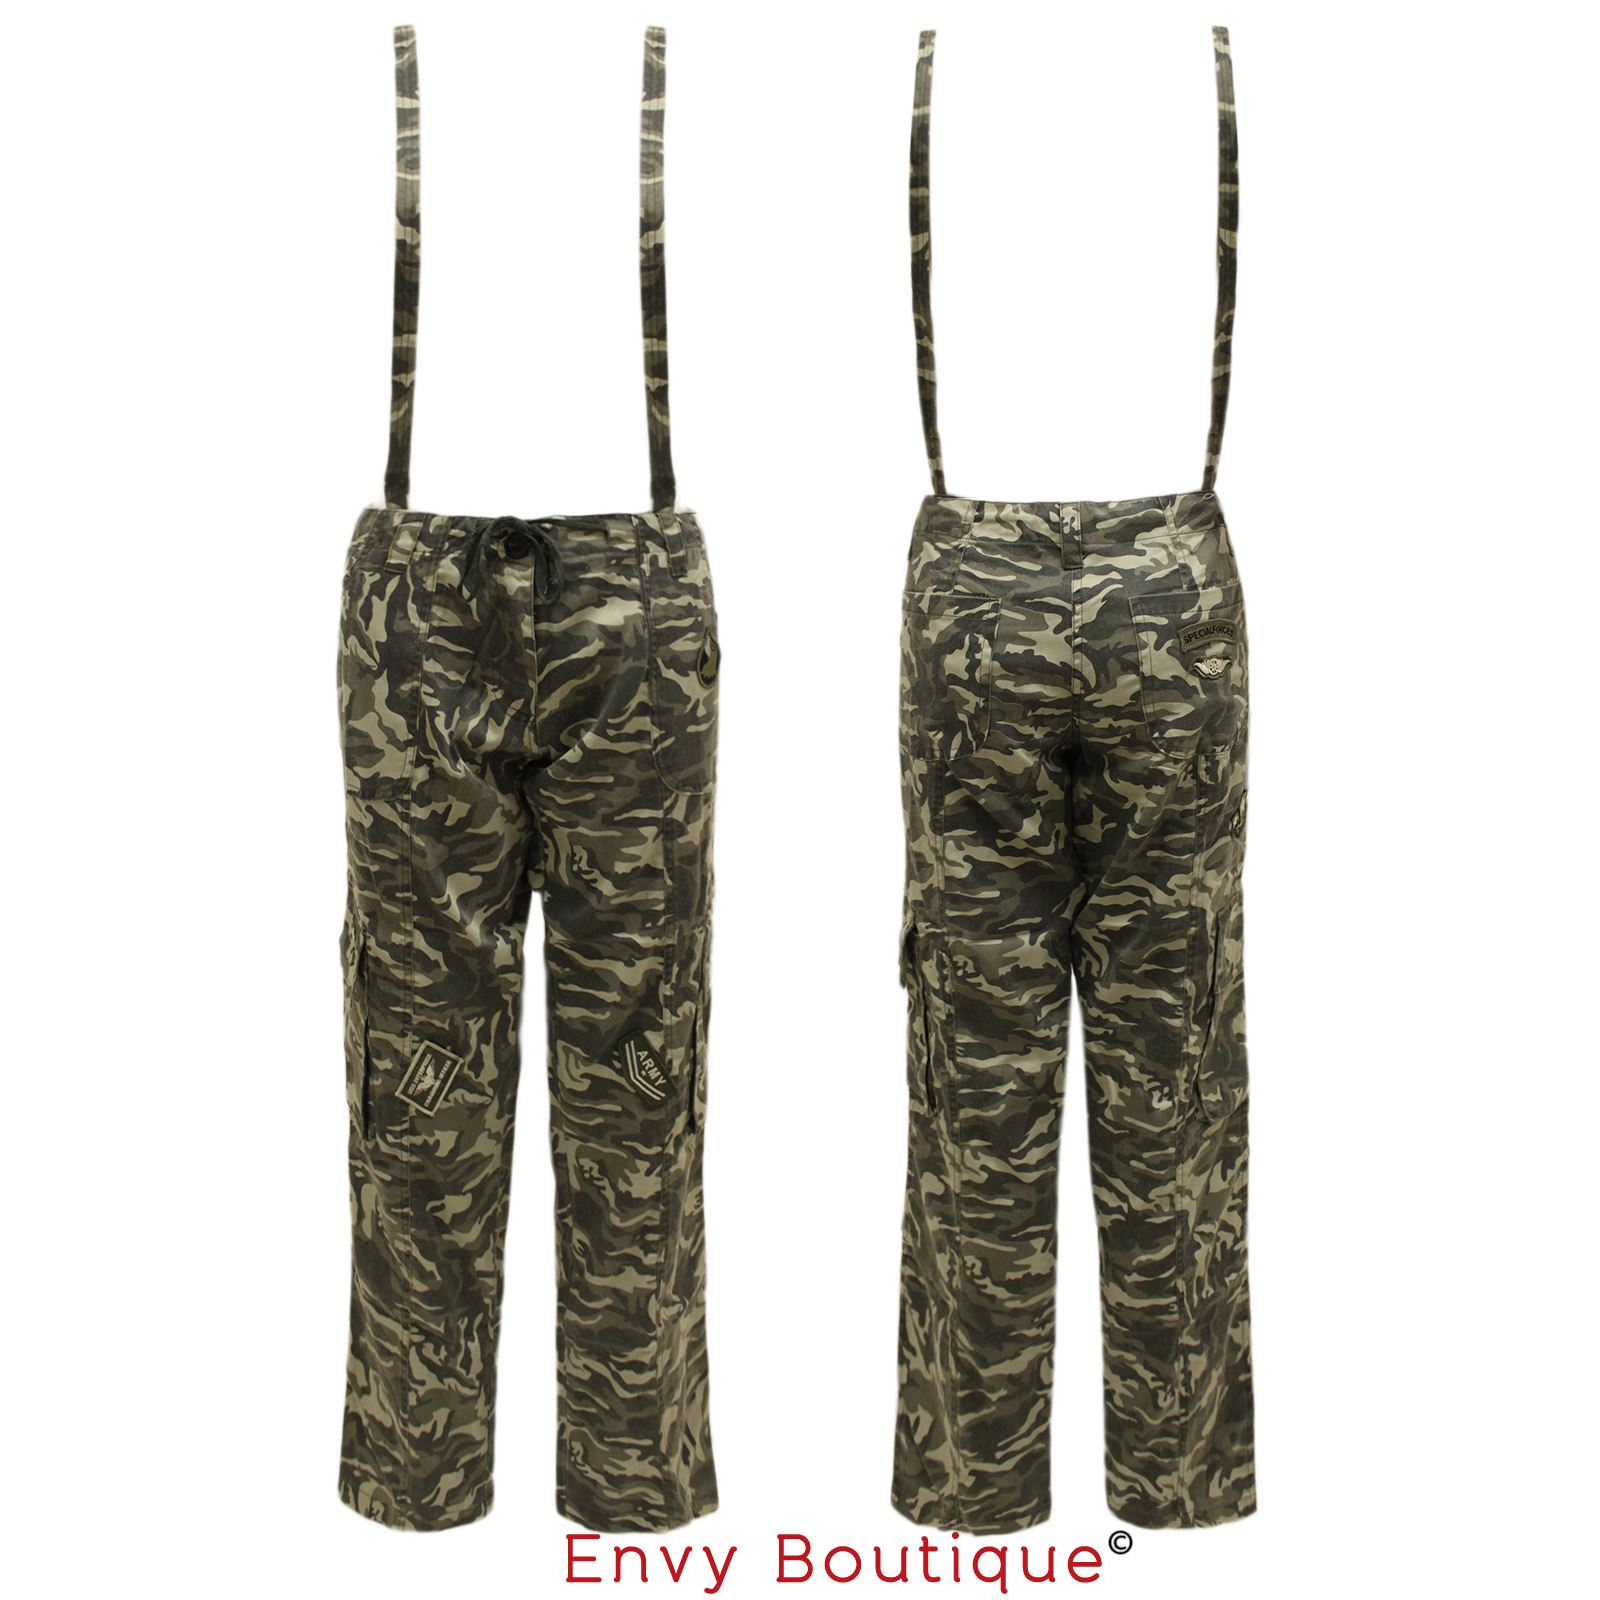 Creative Clothing Fashion Women39s Army Fatigue Camo Cargo Pants Girls Baggy